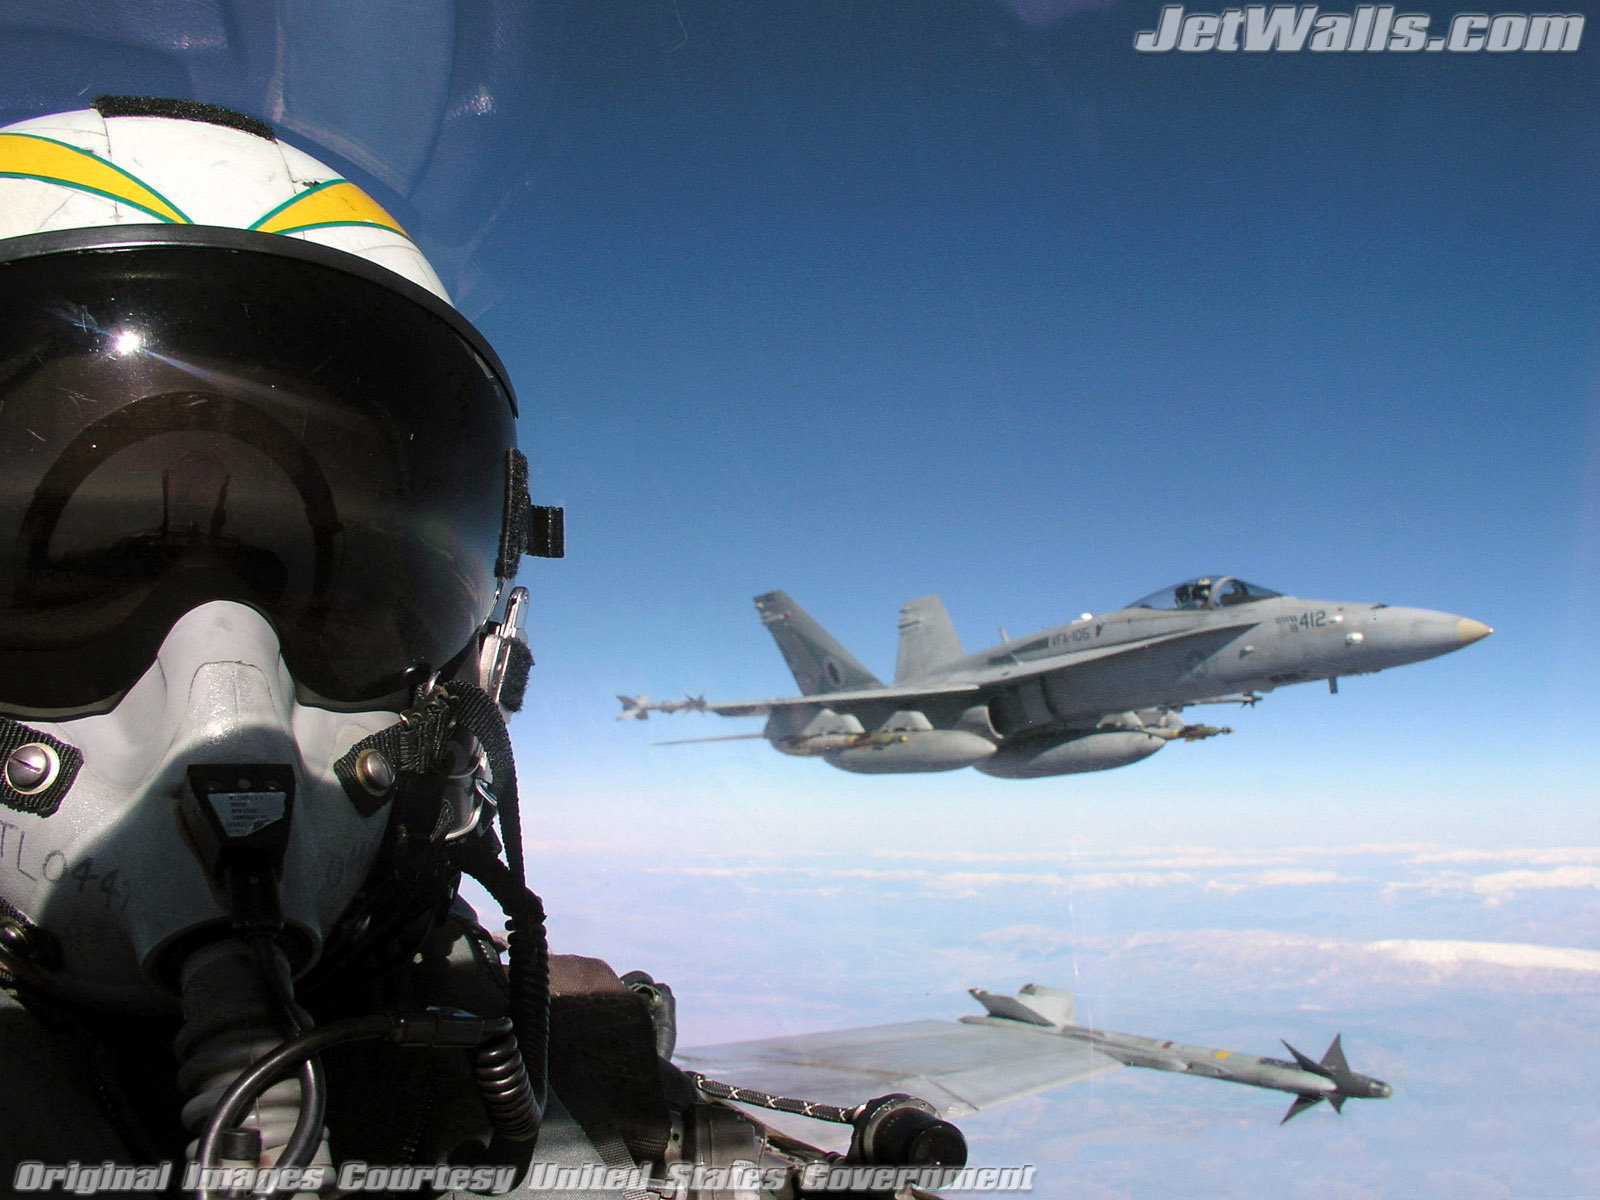 """F/A-18 Hornets"" - Wallpaper No. 26 of 101. Right click for saving options."